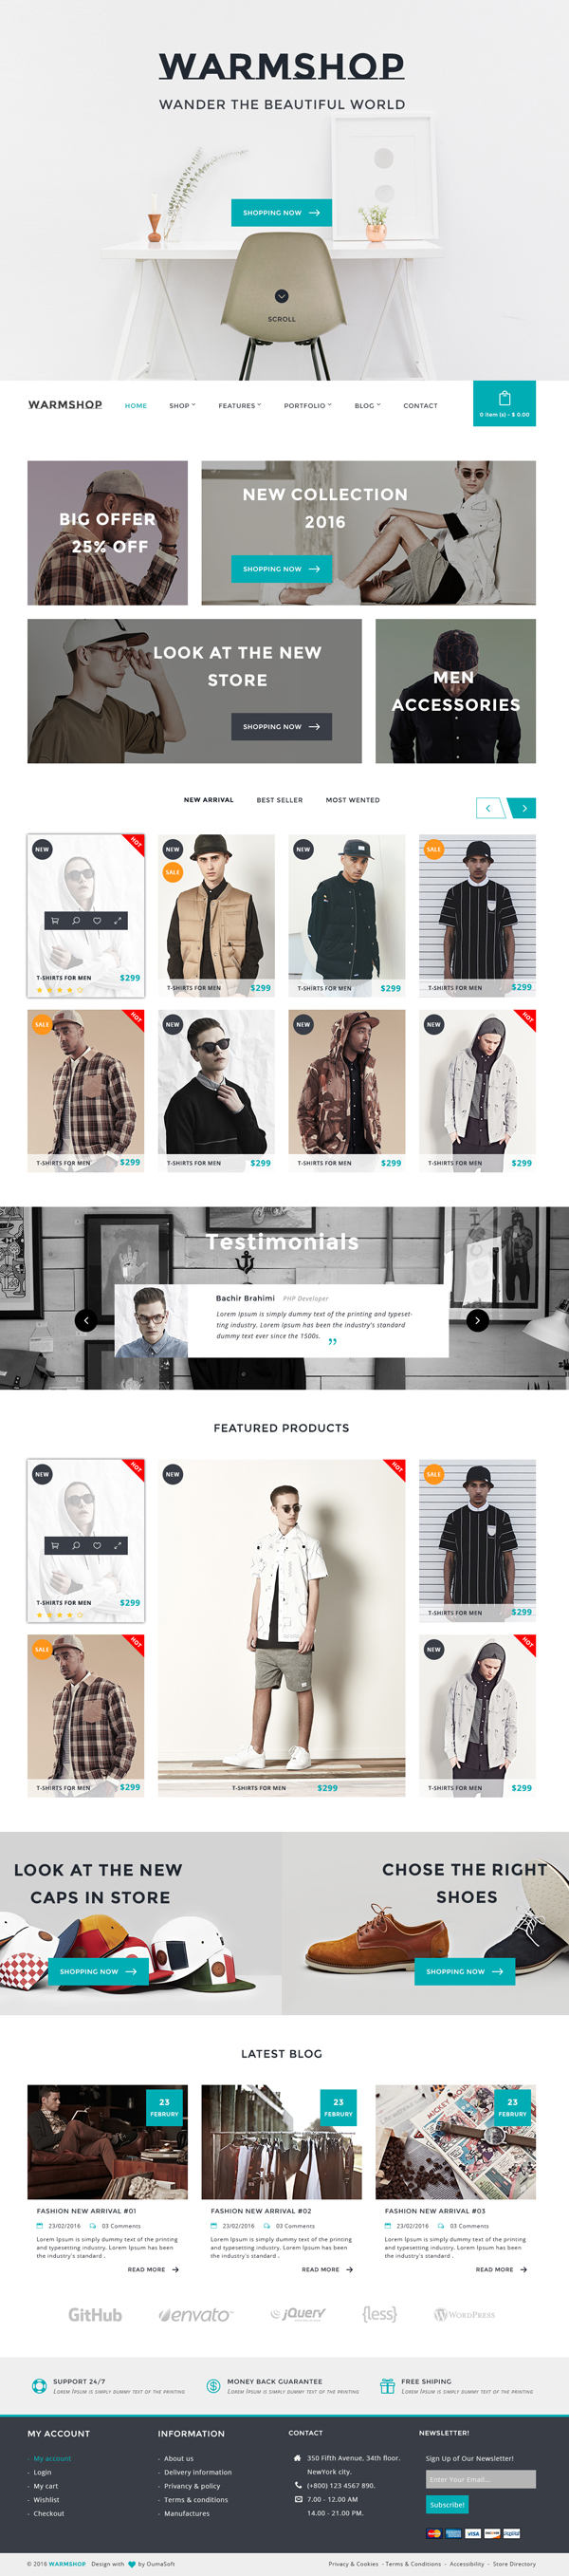 Warmshop - Minimal eCommerce PSD Template